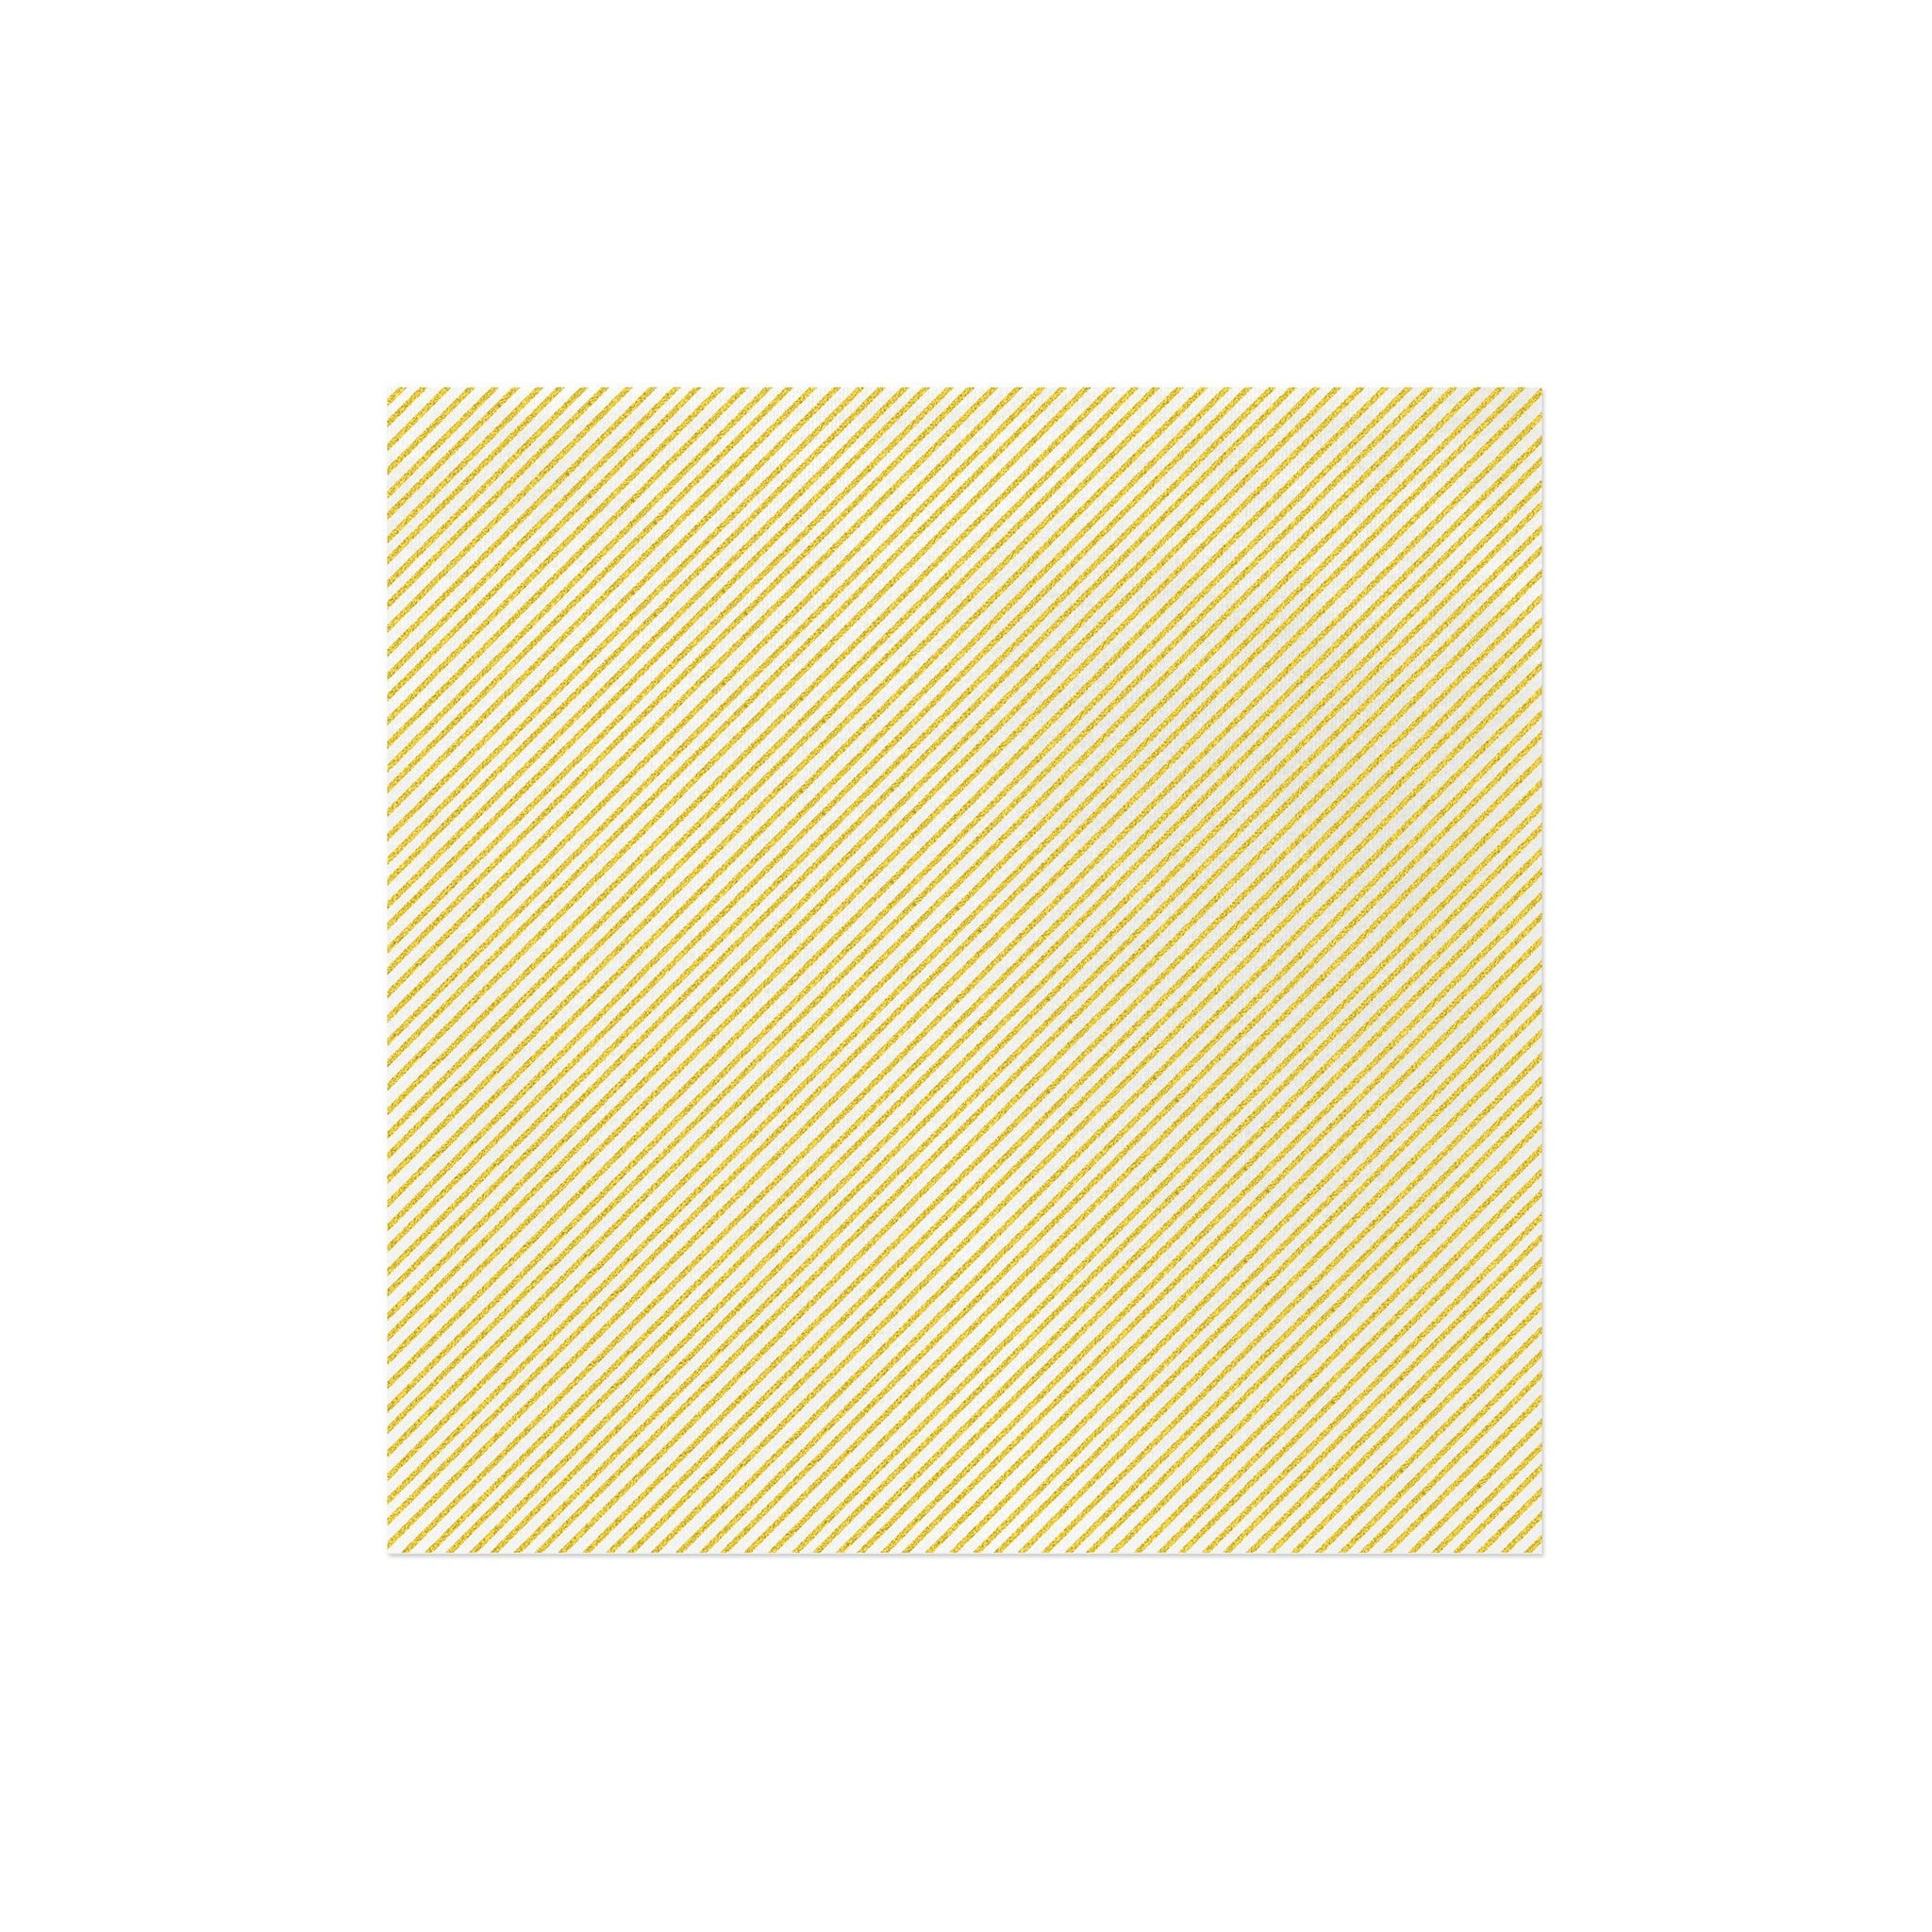 Papersoft Napkins Seersucker Stripe Yellow Dinner Napkins (Pack of 50)